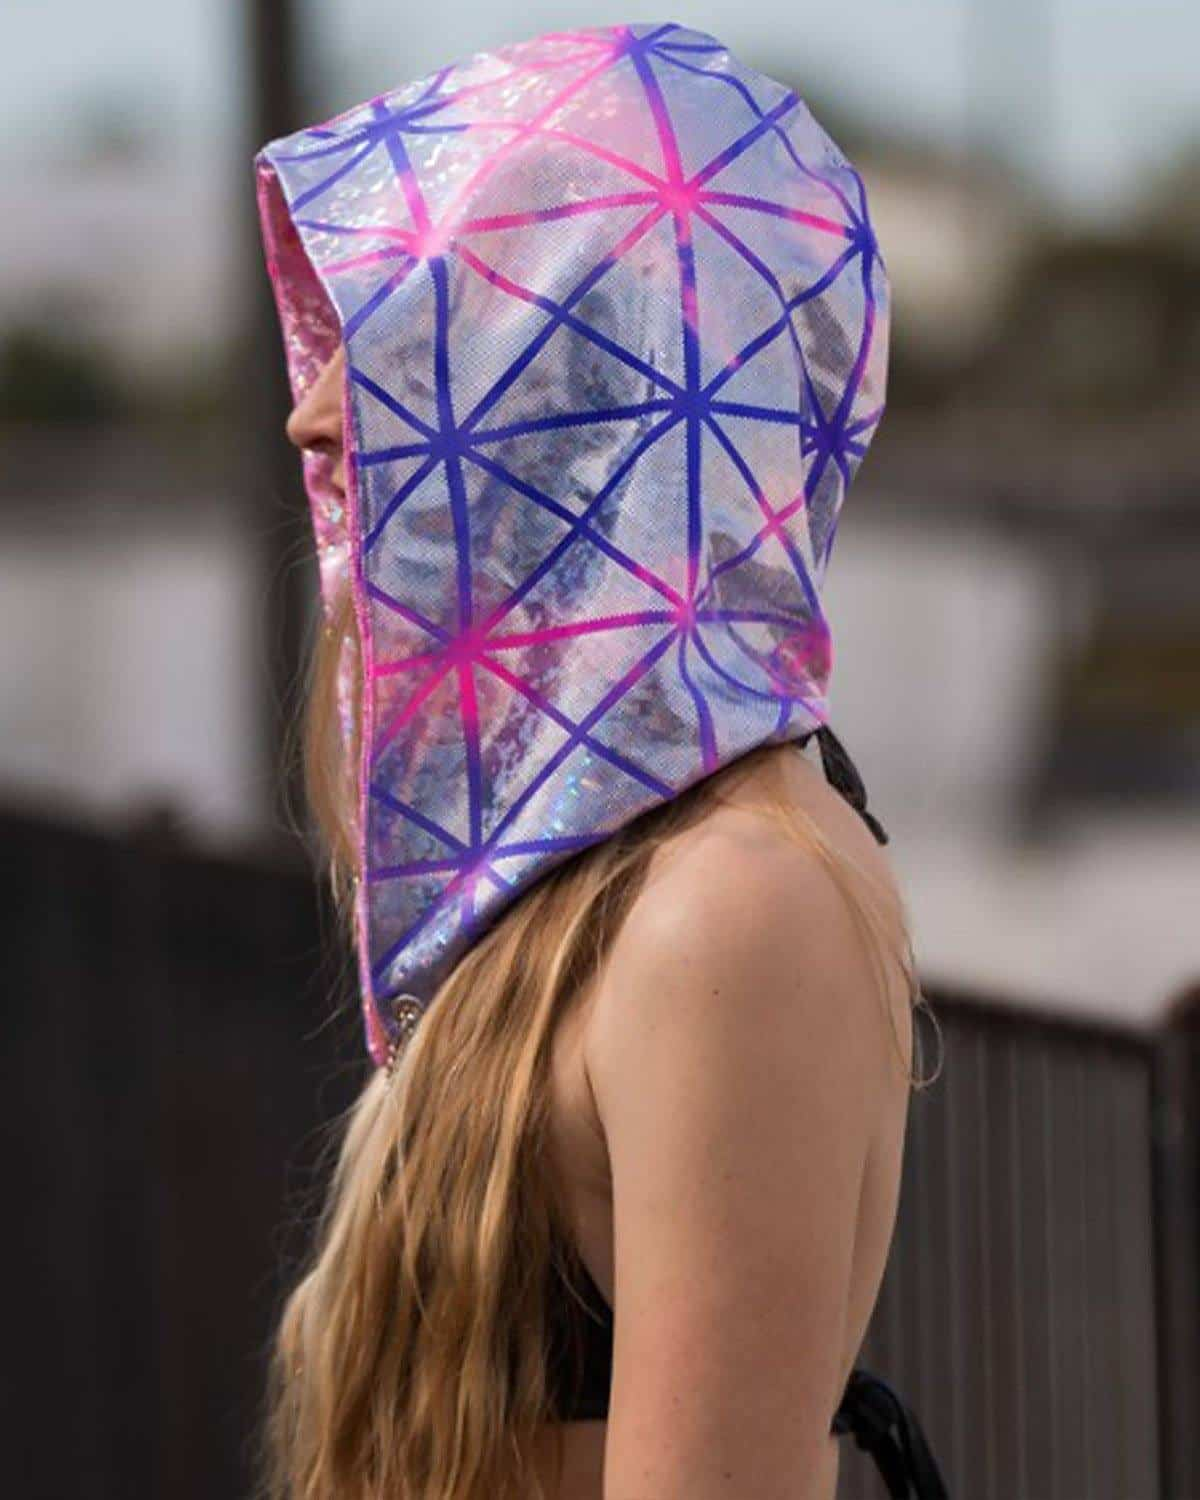 Excision Unisex Rock Candy Spandex Assassin Hood by Freedom Rave Wear